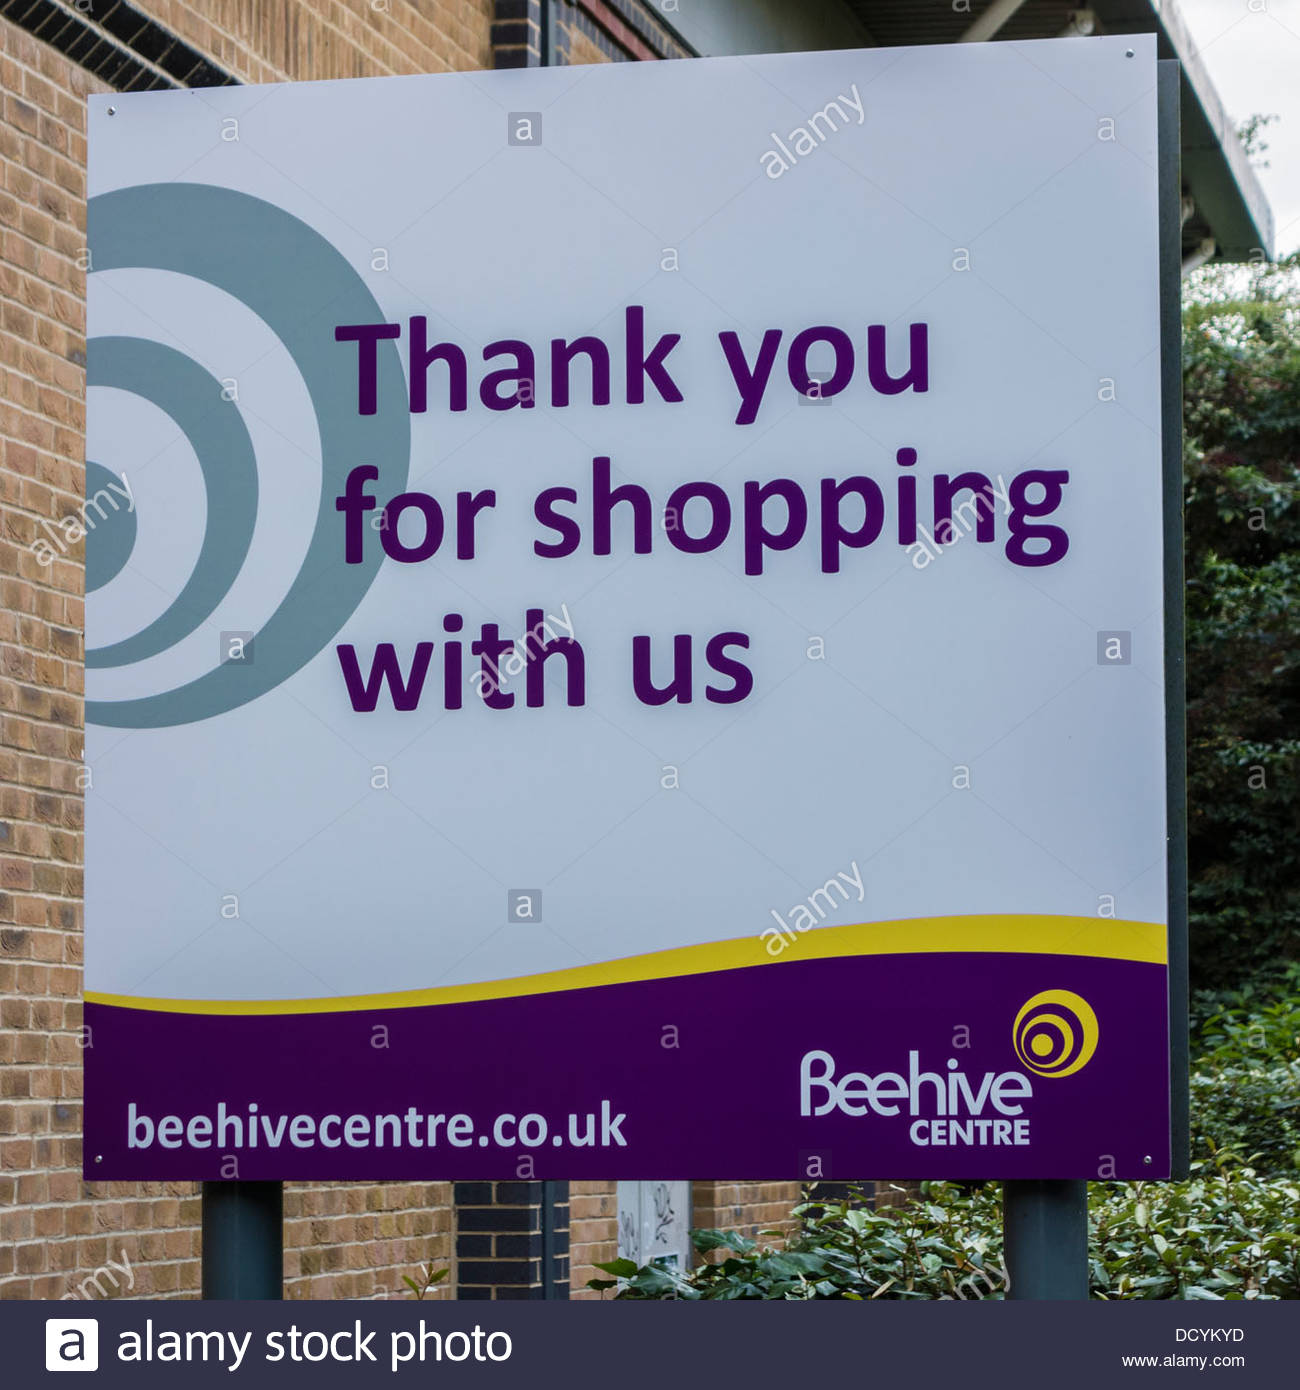 Thank you for shopping with us sign at the Beehive Centre in Cambridge - Stock Image